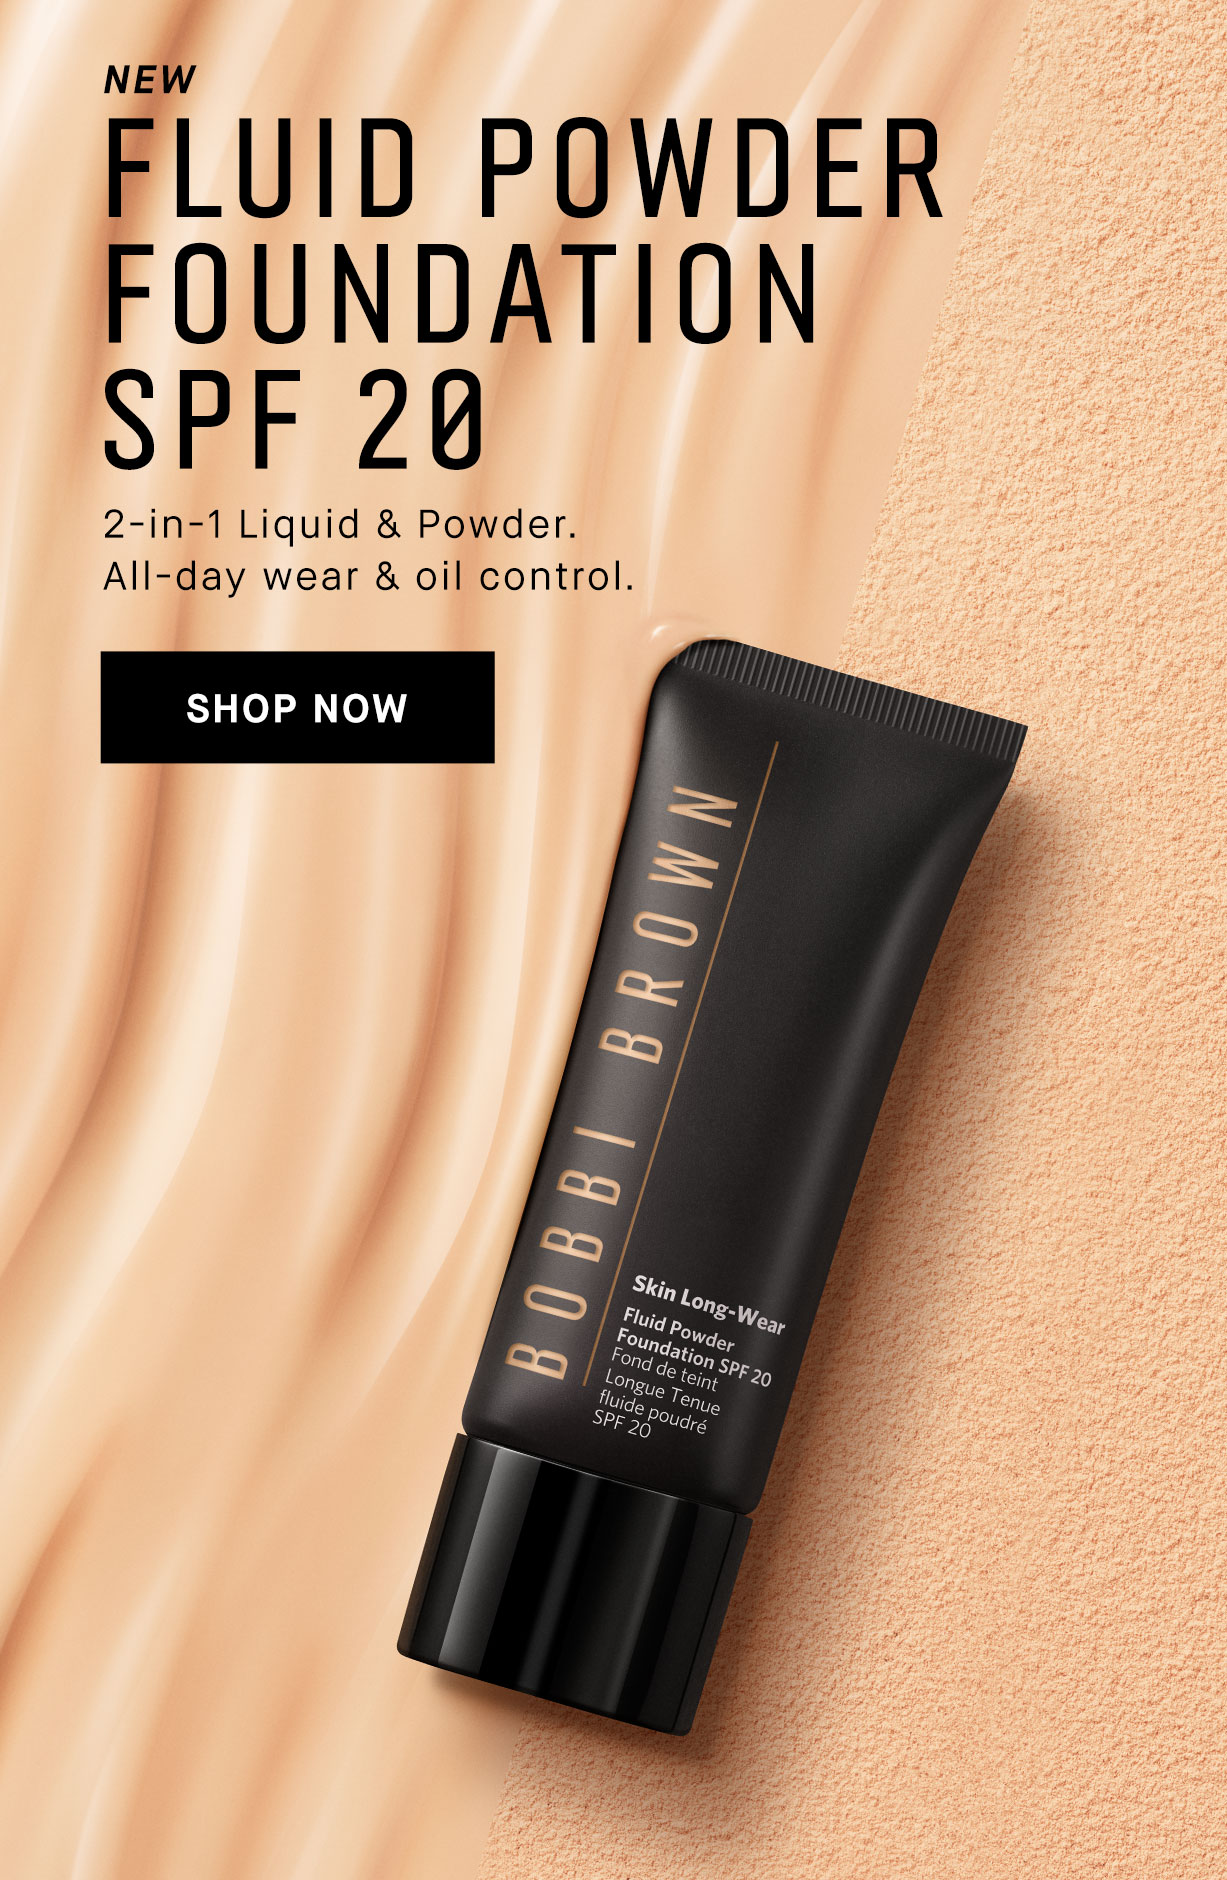 Fluid Powder Foundation SPF 20 | SHOP NOW